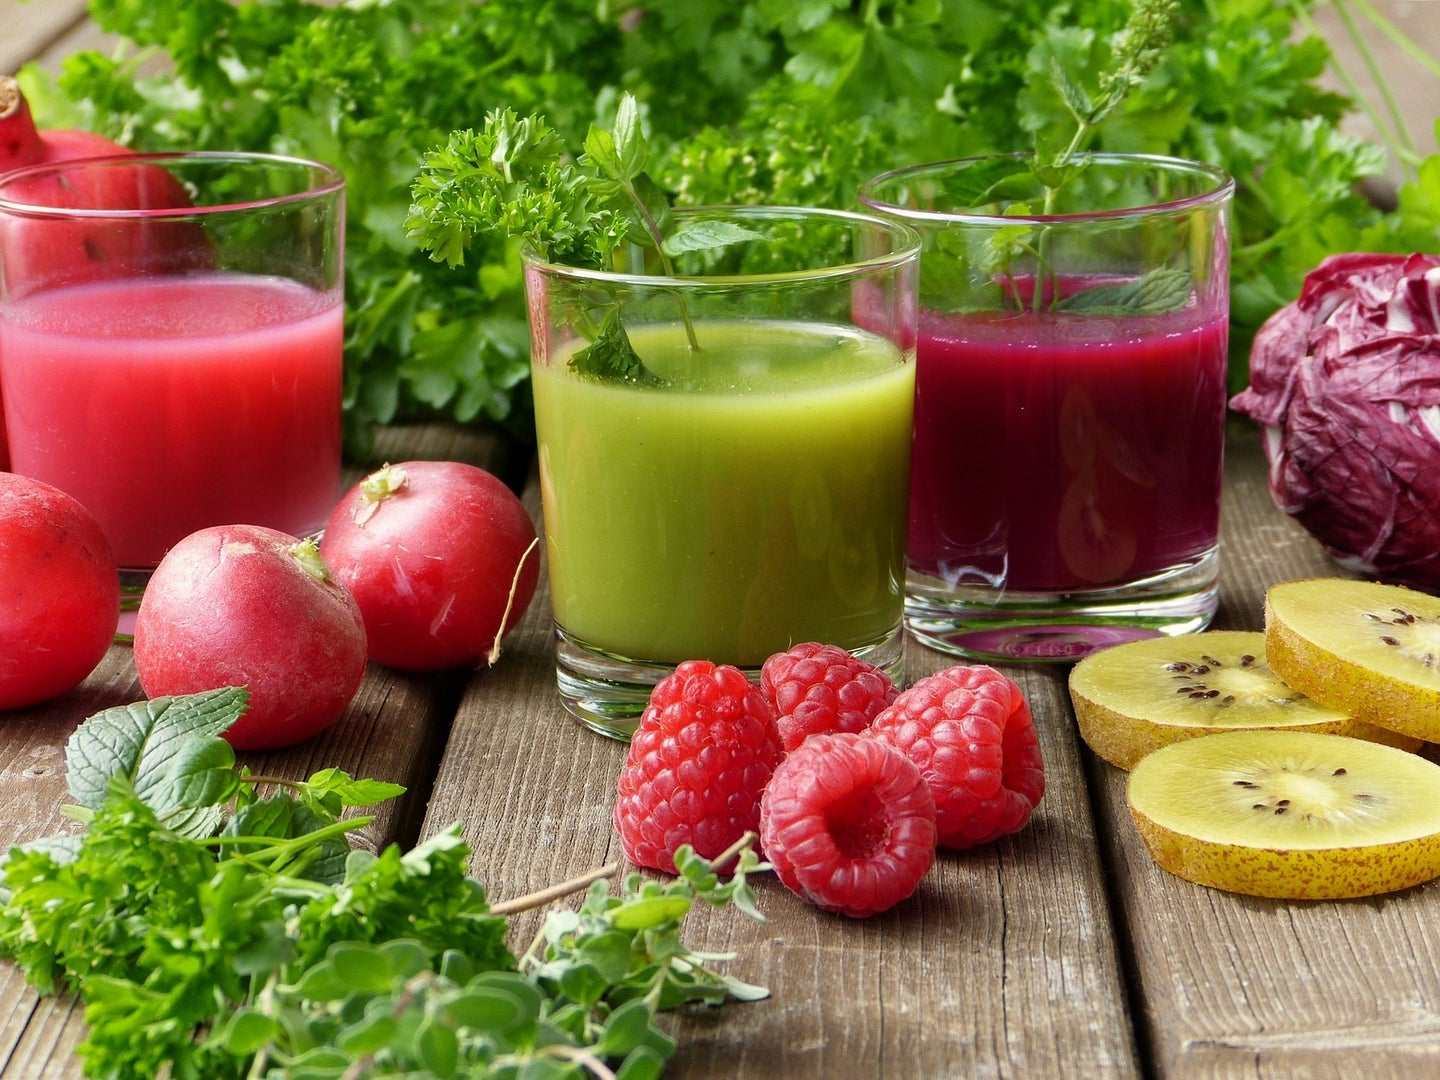 Glasses of juice, smoothies, and berries on a table.